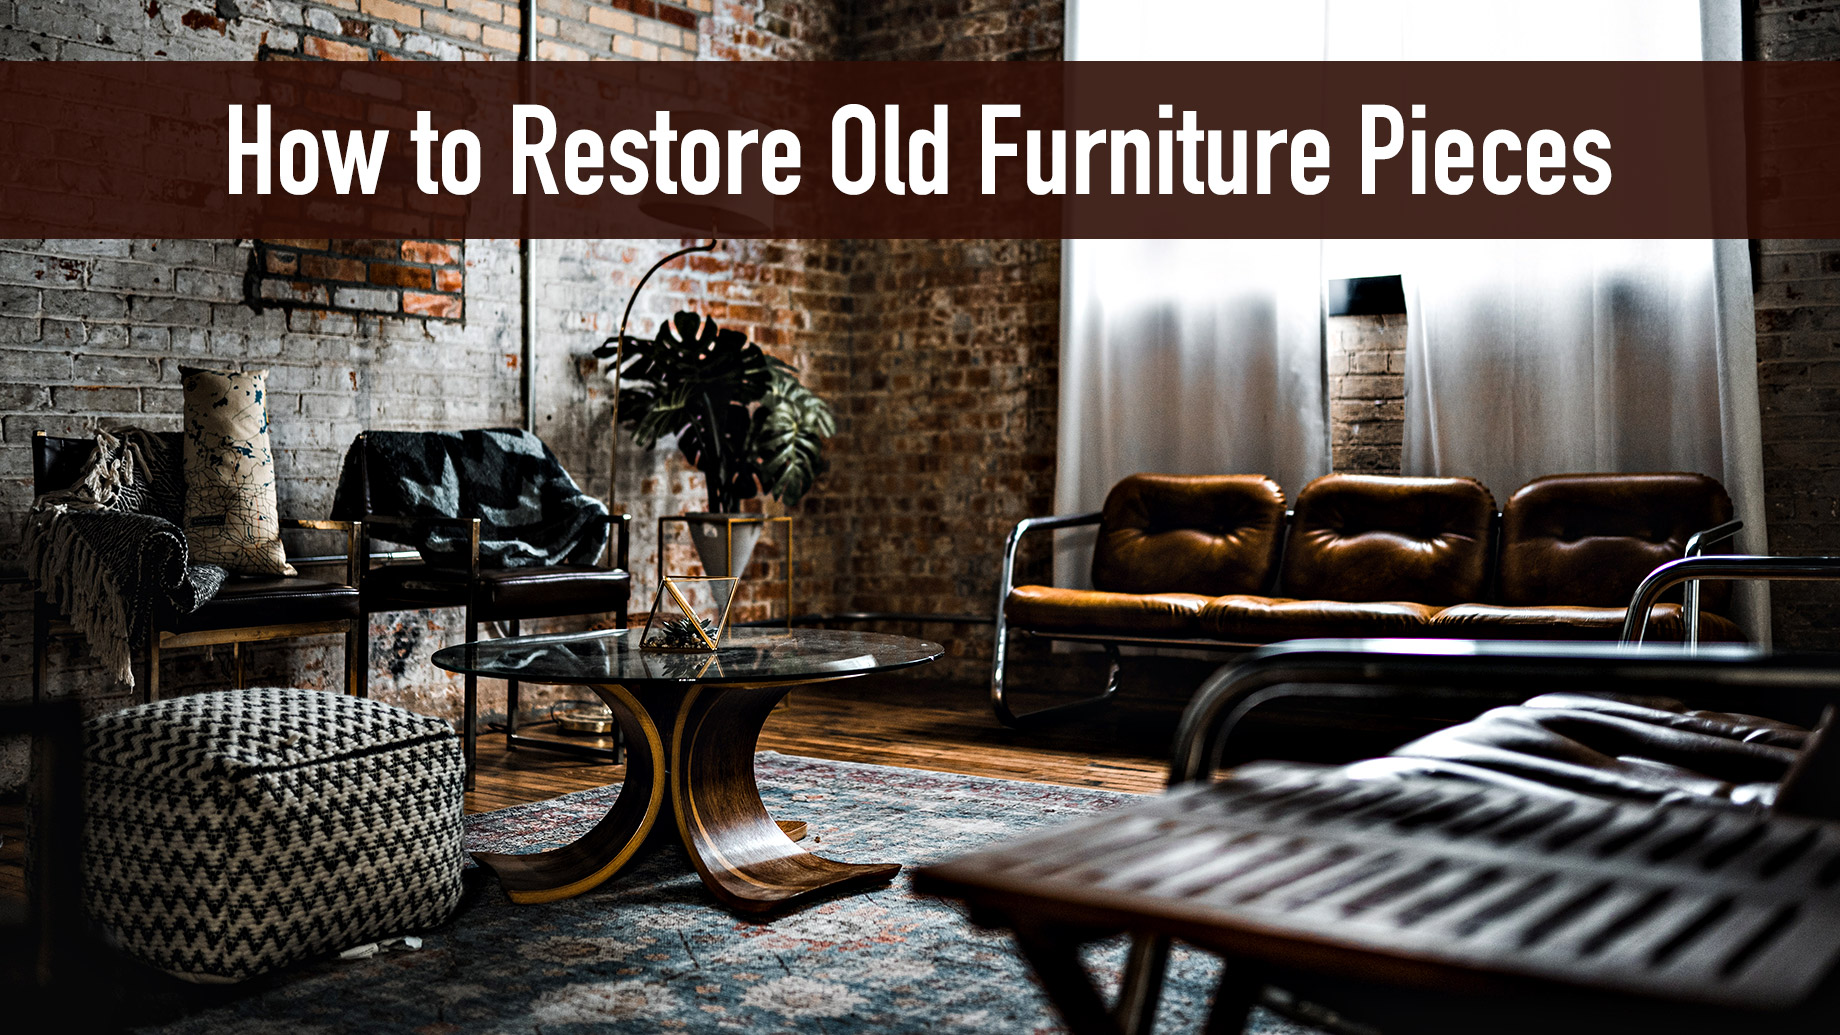 How to Restore Old Furniture Pieces